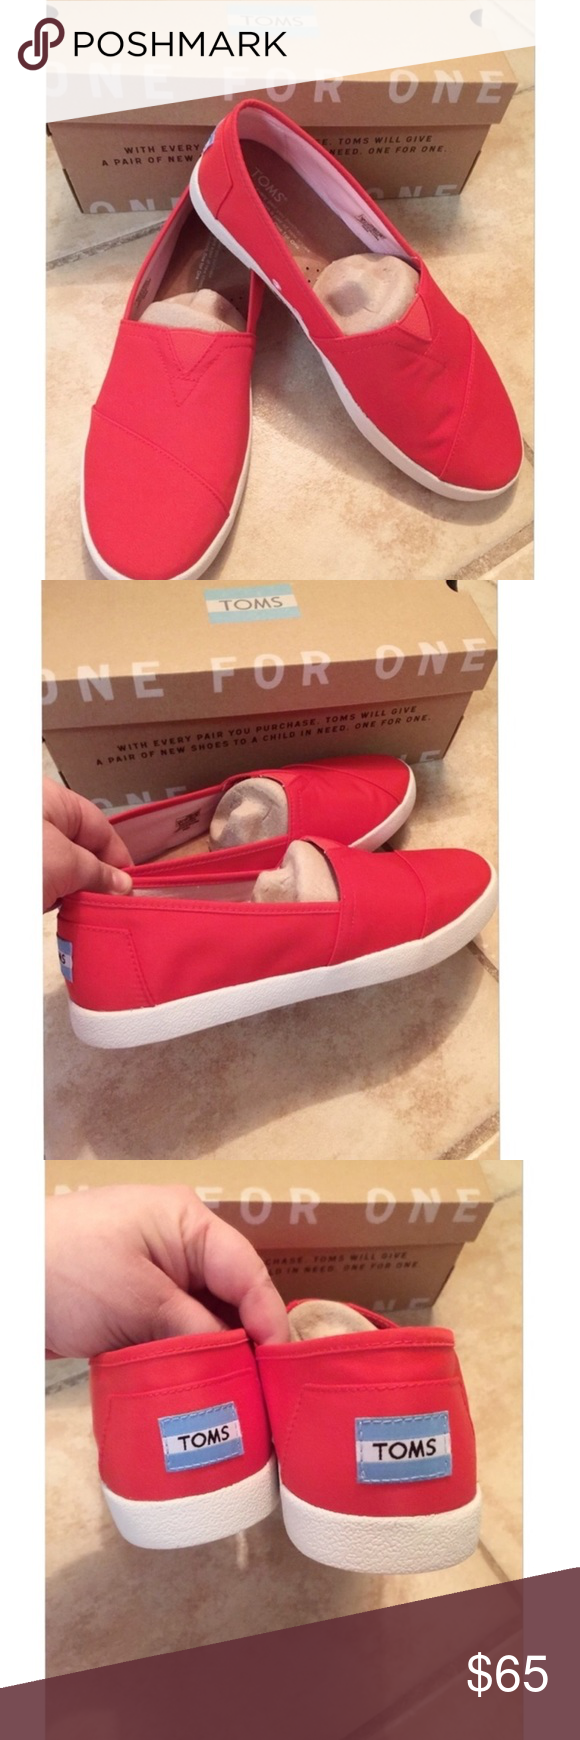   Toms   New Shoes. 🆕 New cute fiesta color TOMS shoes brand new and comes with its original box. Never worn. Size 9. In great condition. Bought them from the toms online store. Never wore them.  Fast shipping. Bundle more. Thank you. TOMS Shoes Flats & Loafers